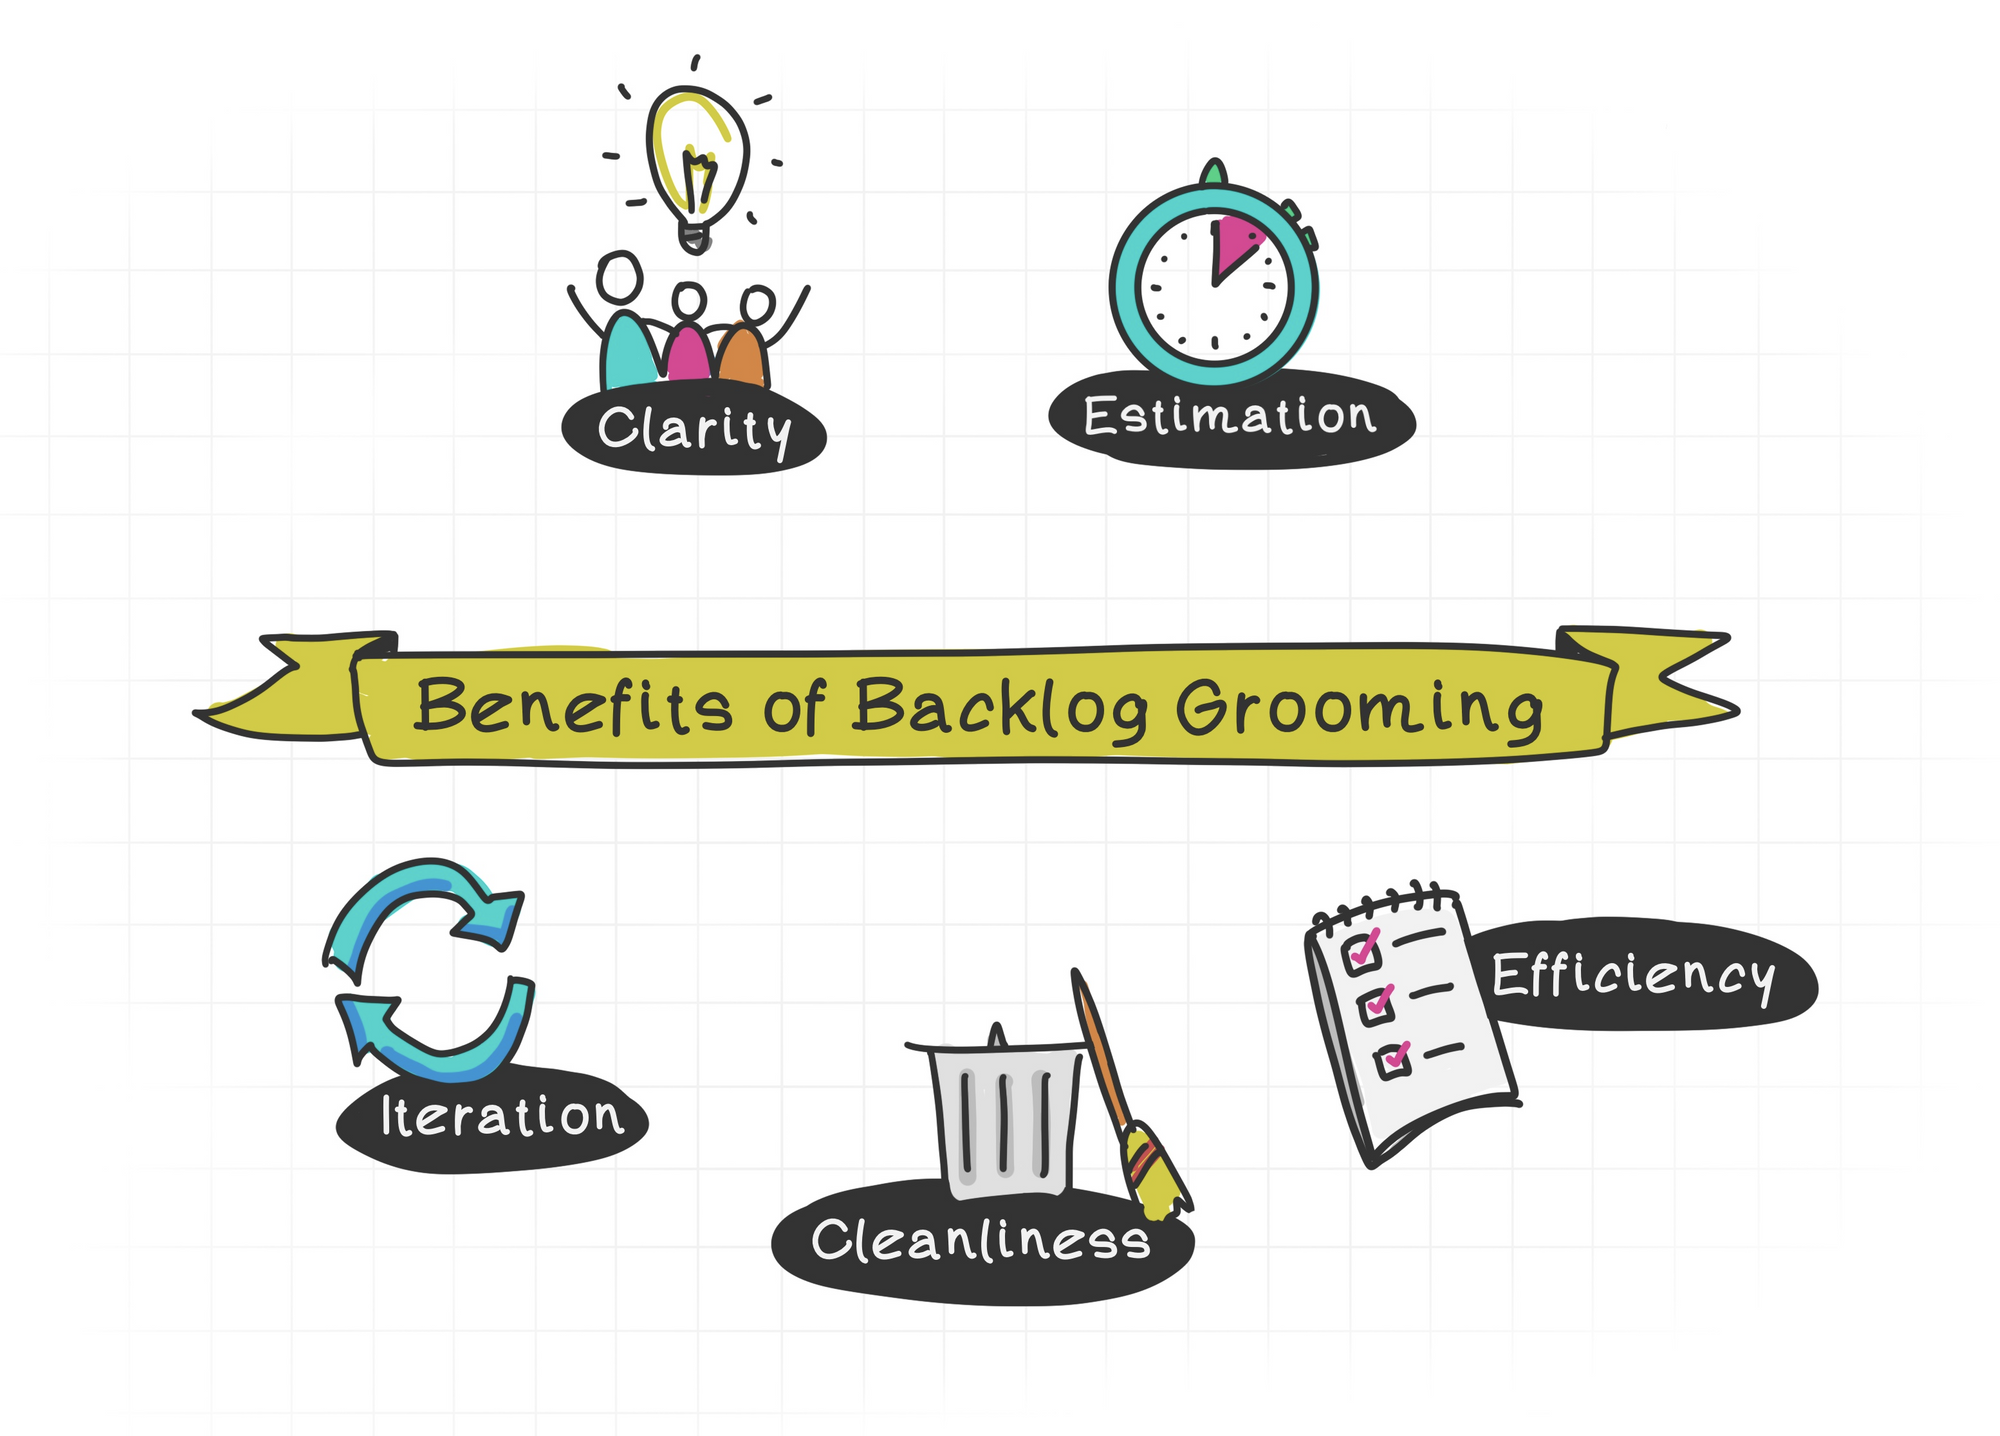 There are many benefits to grooming a backlog